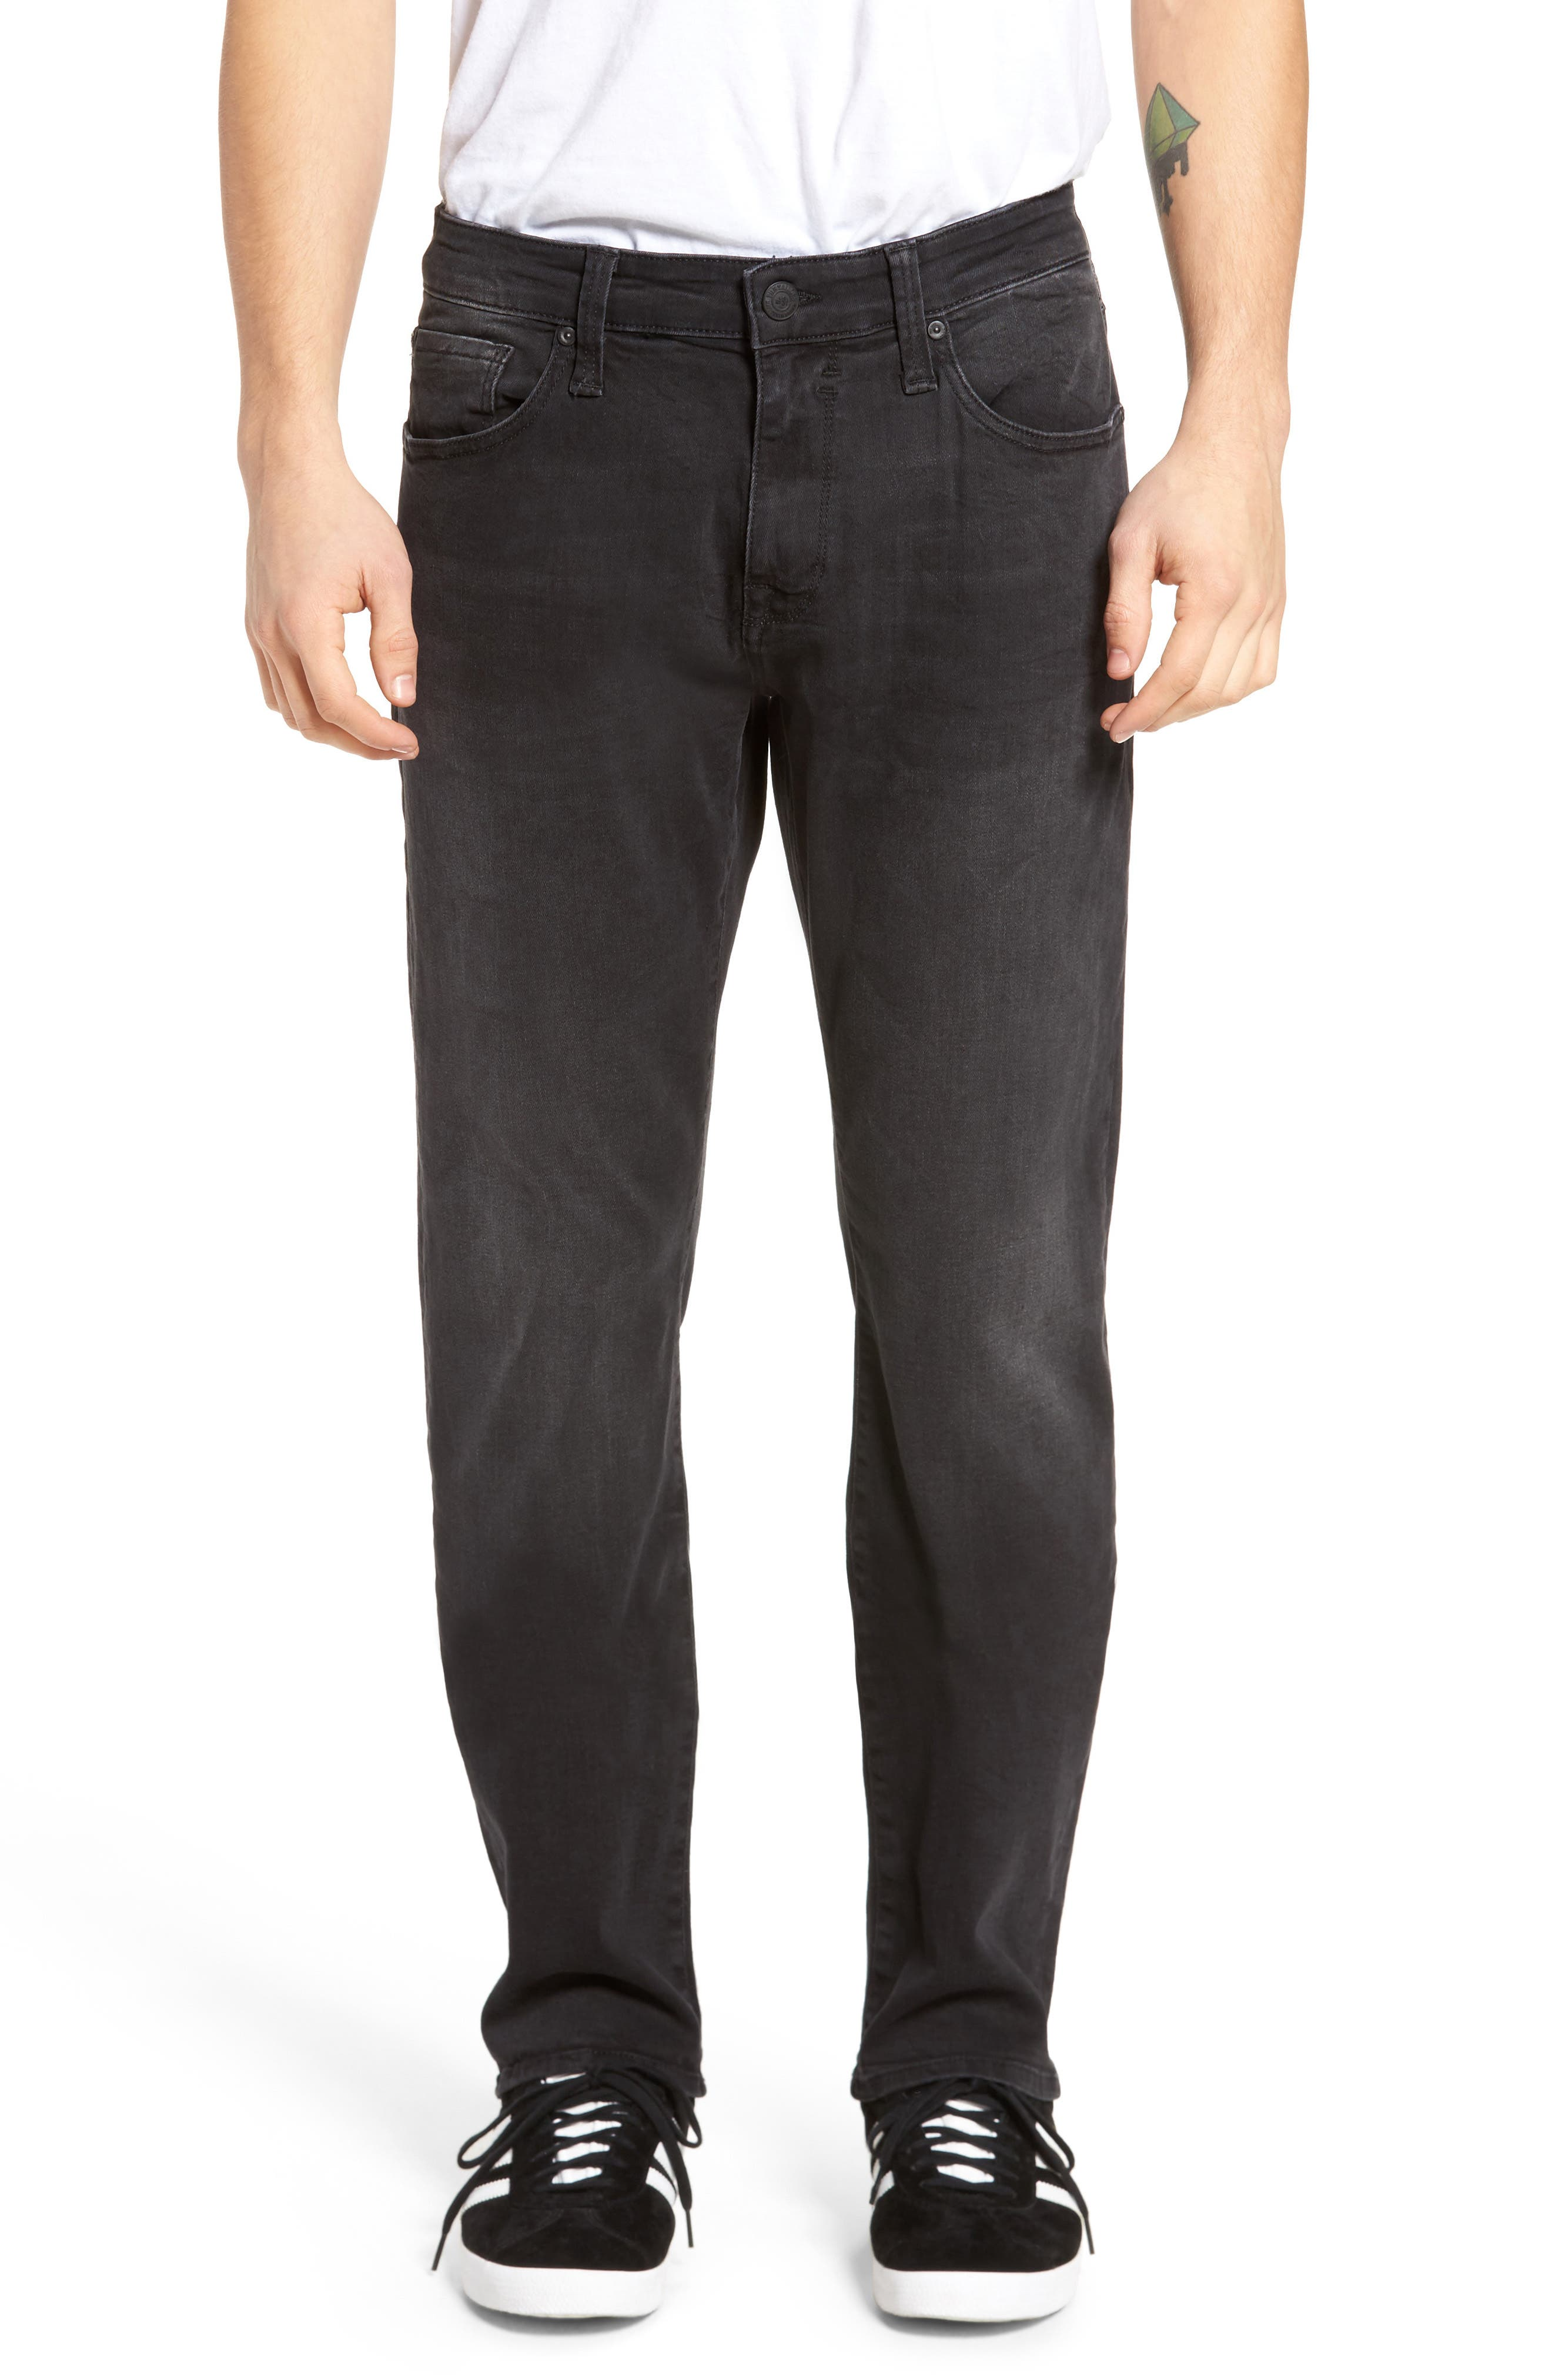 Zach Straight Fit Jeans,                         Main,                         color, Smoke Chelsea